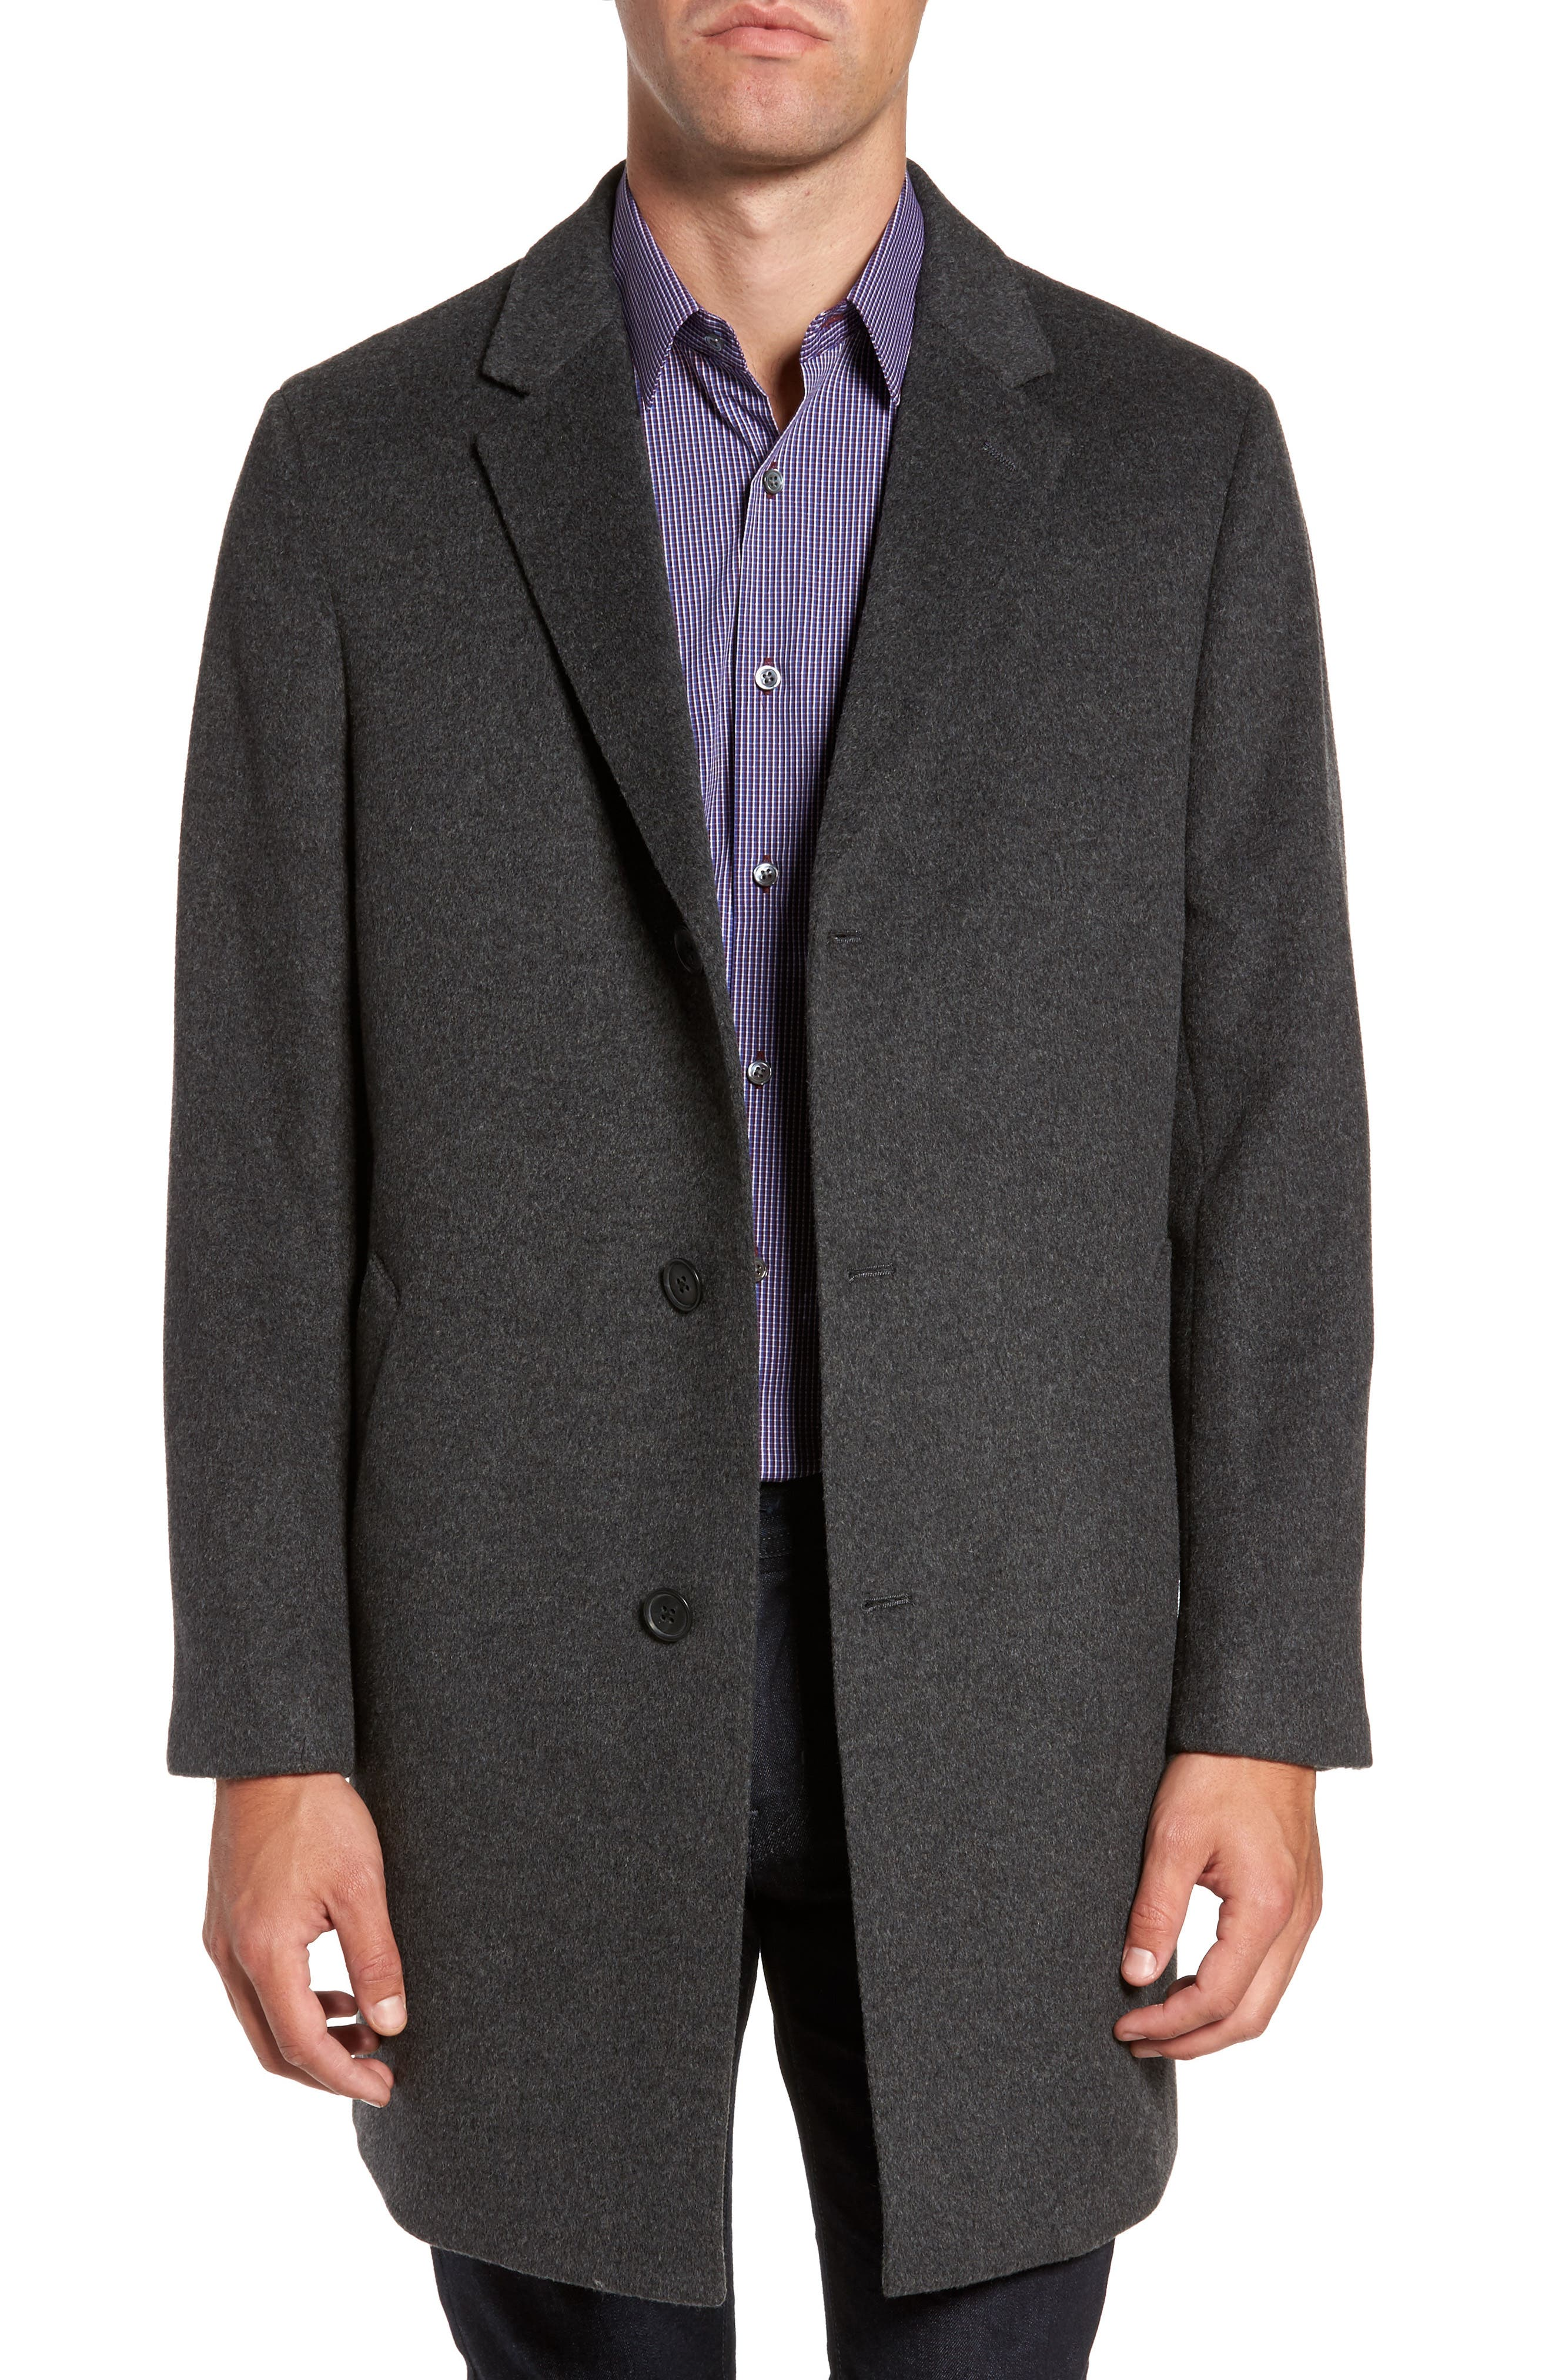 Mason Wool & Cashmere Overcoat,                         Main,                         color, Charcoal